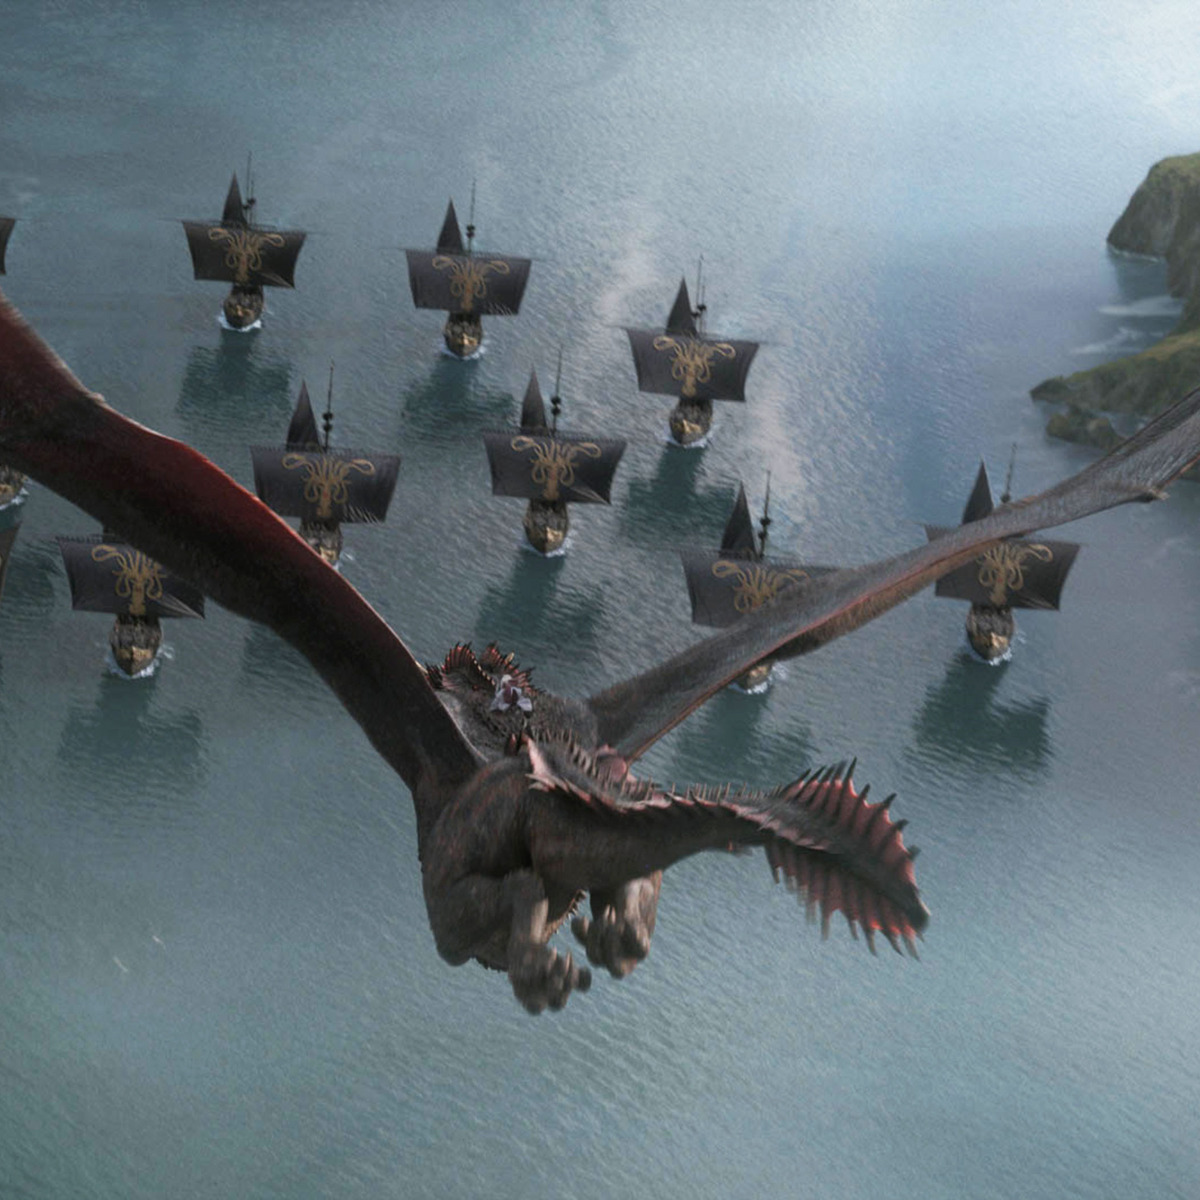 How Do Game of Thrones' Dragons Reproduce?